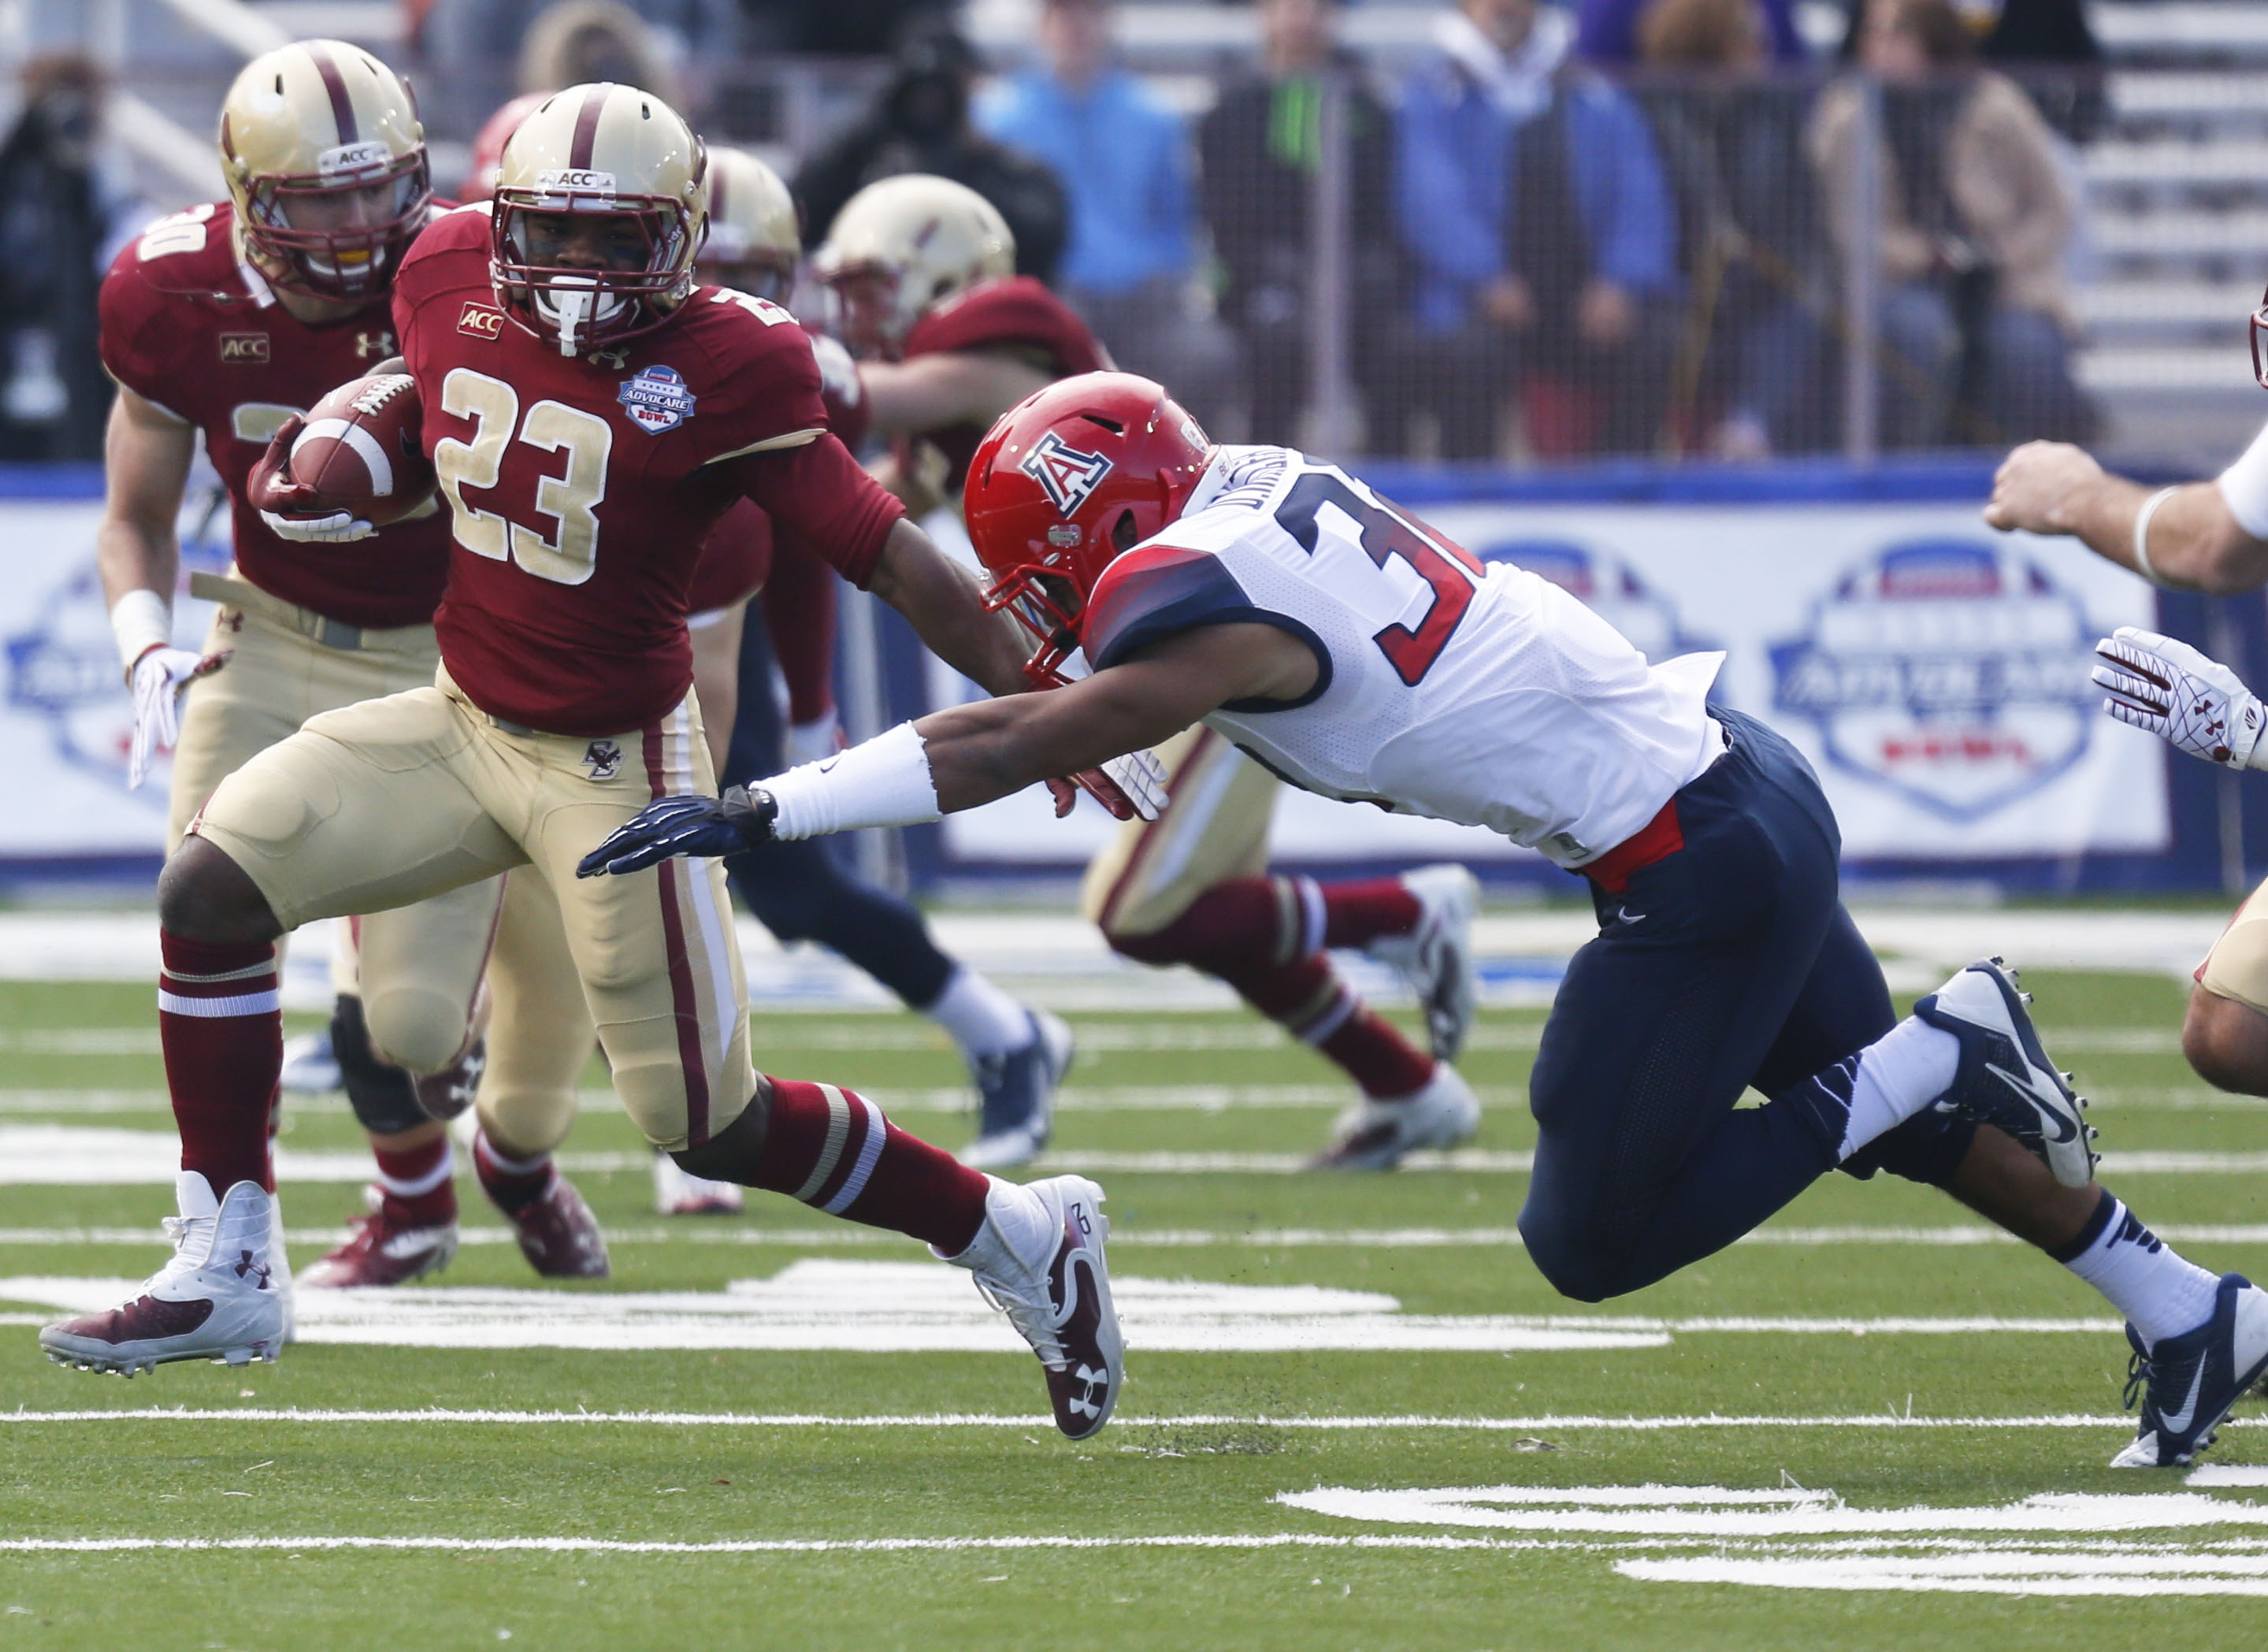 Boston College running back Myles Willis (23) runs for a short gain against the defense of Arizona linebacker DeAndre' Miller (32) during the first half of the AdvoCare V100 Bowl NCAA college football game, Tuesday, Dec. 31, 2013, at Independence Stadium in Shreveport, La